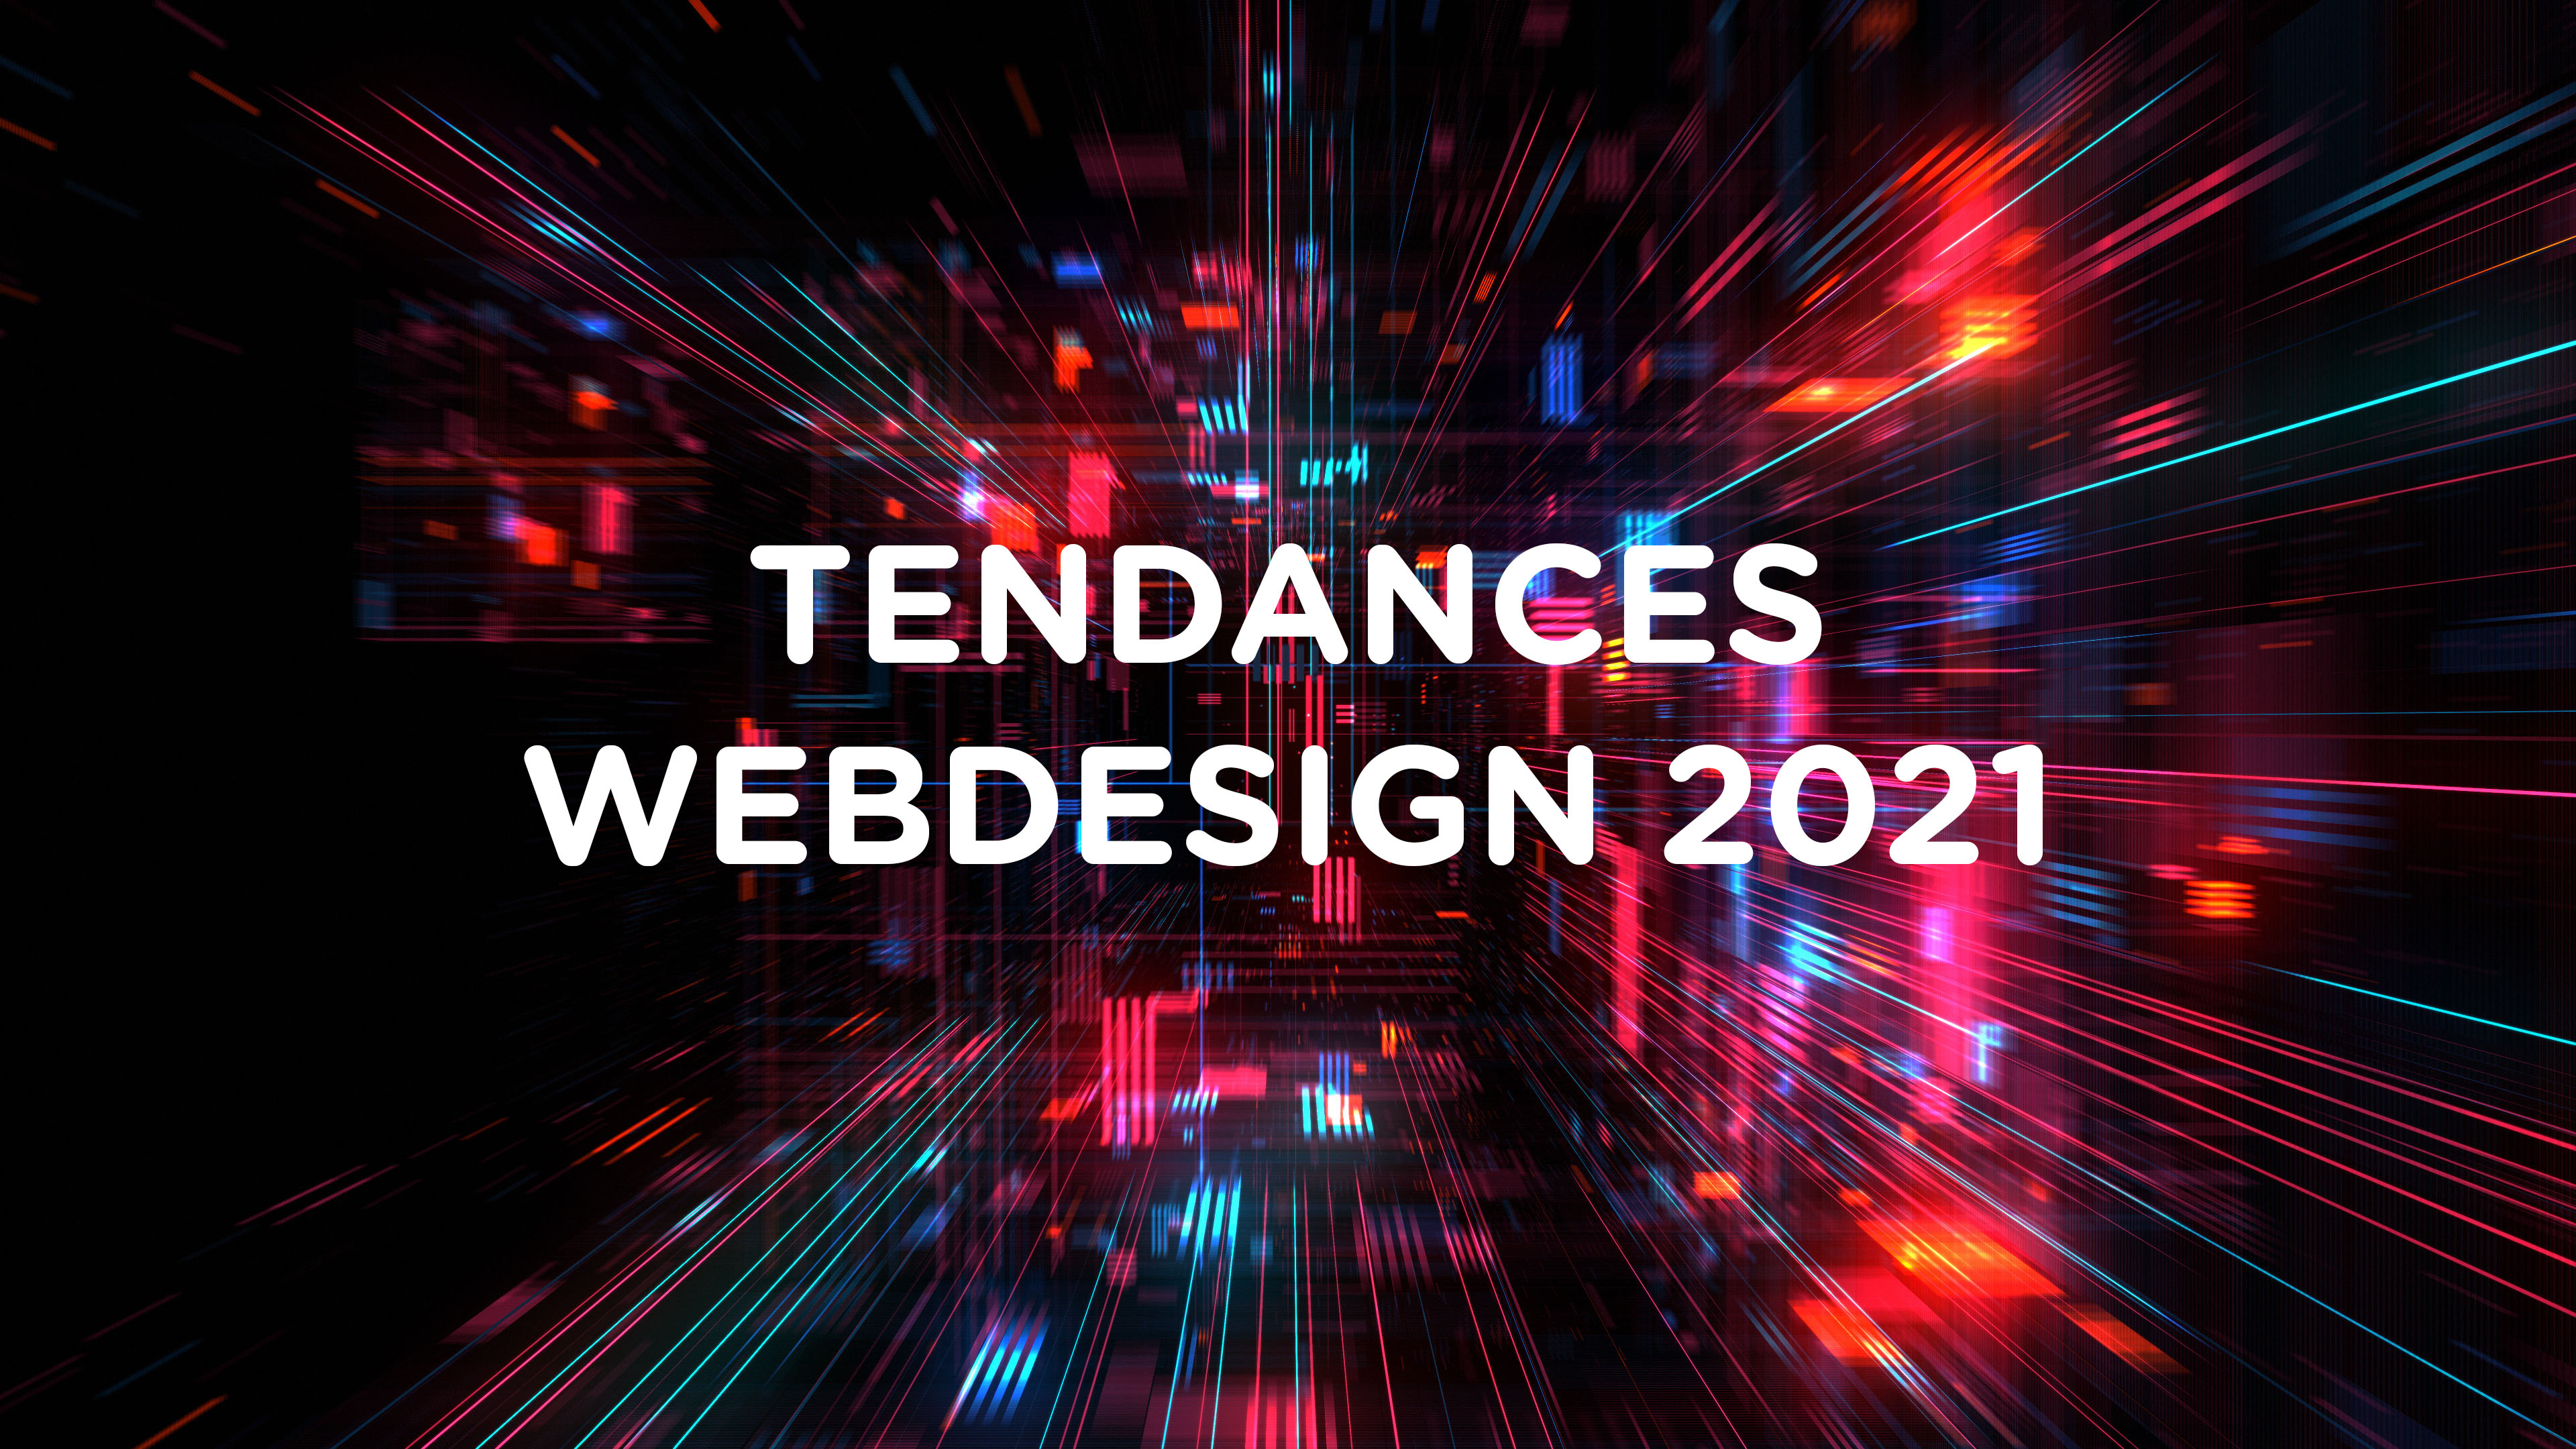 tendances-webdesign-2021-blog-linkeo